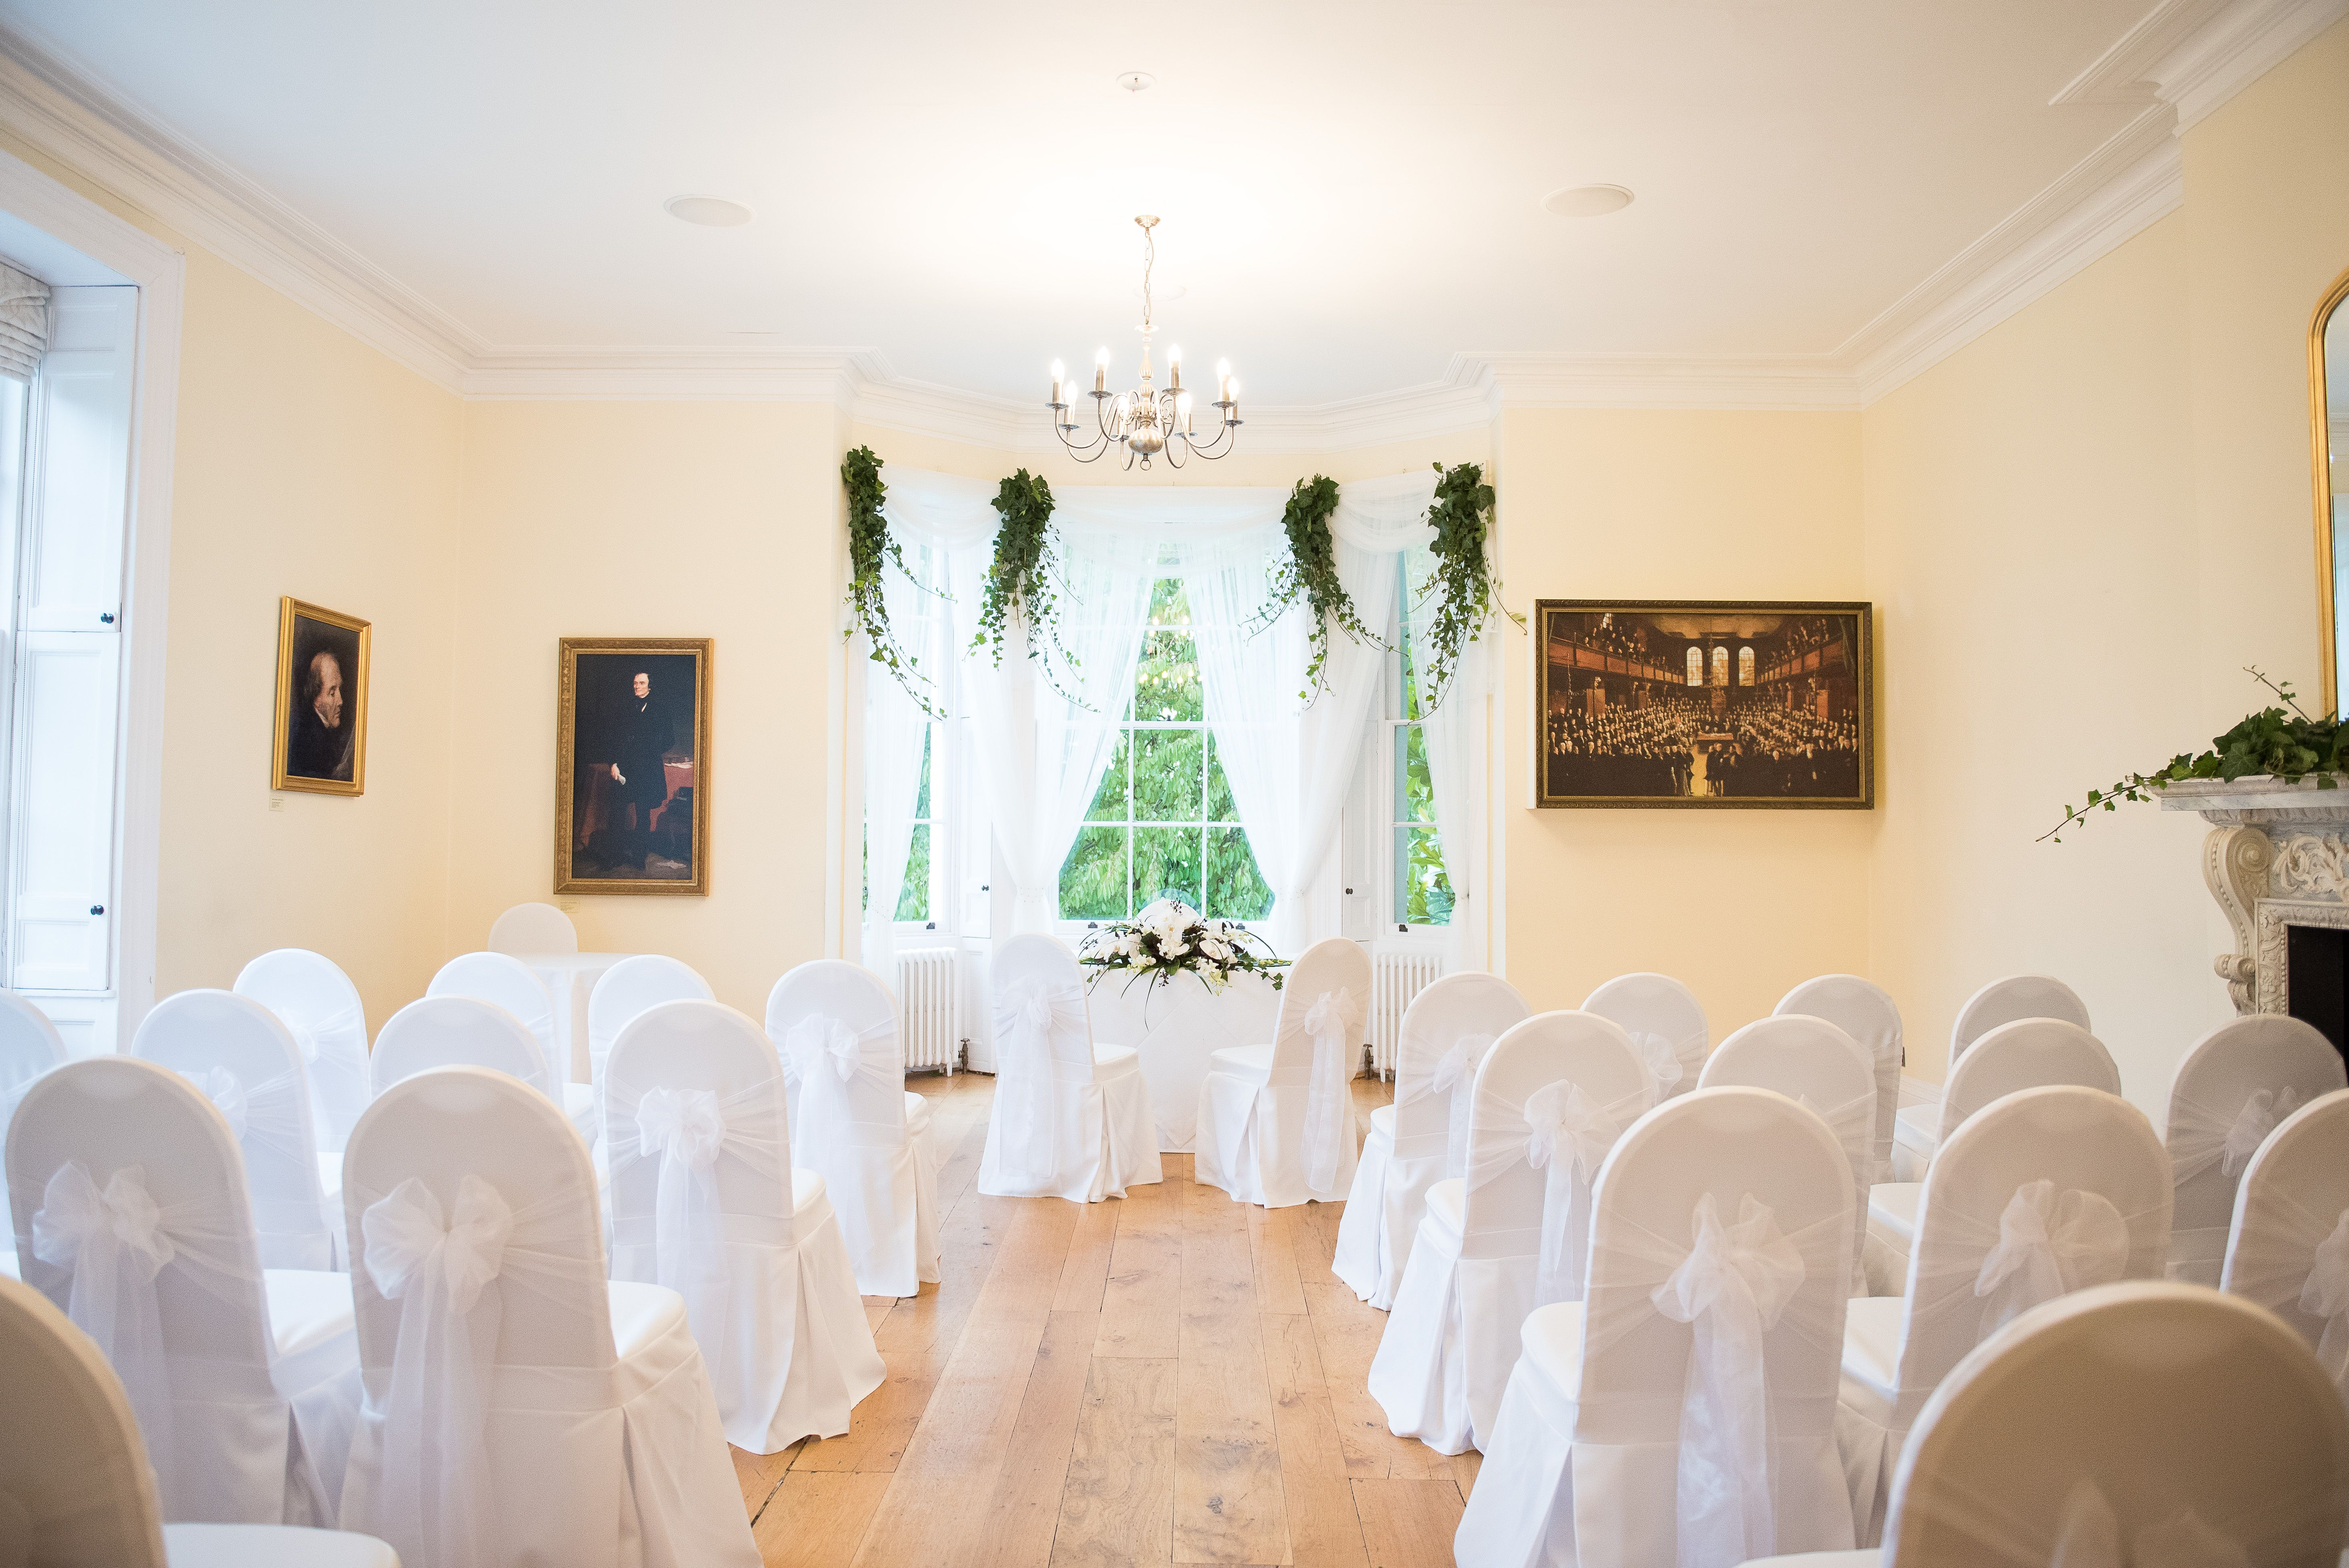 Pembroke Lodge, Richmond Park - London wedding venue http://pembroke ...